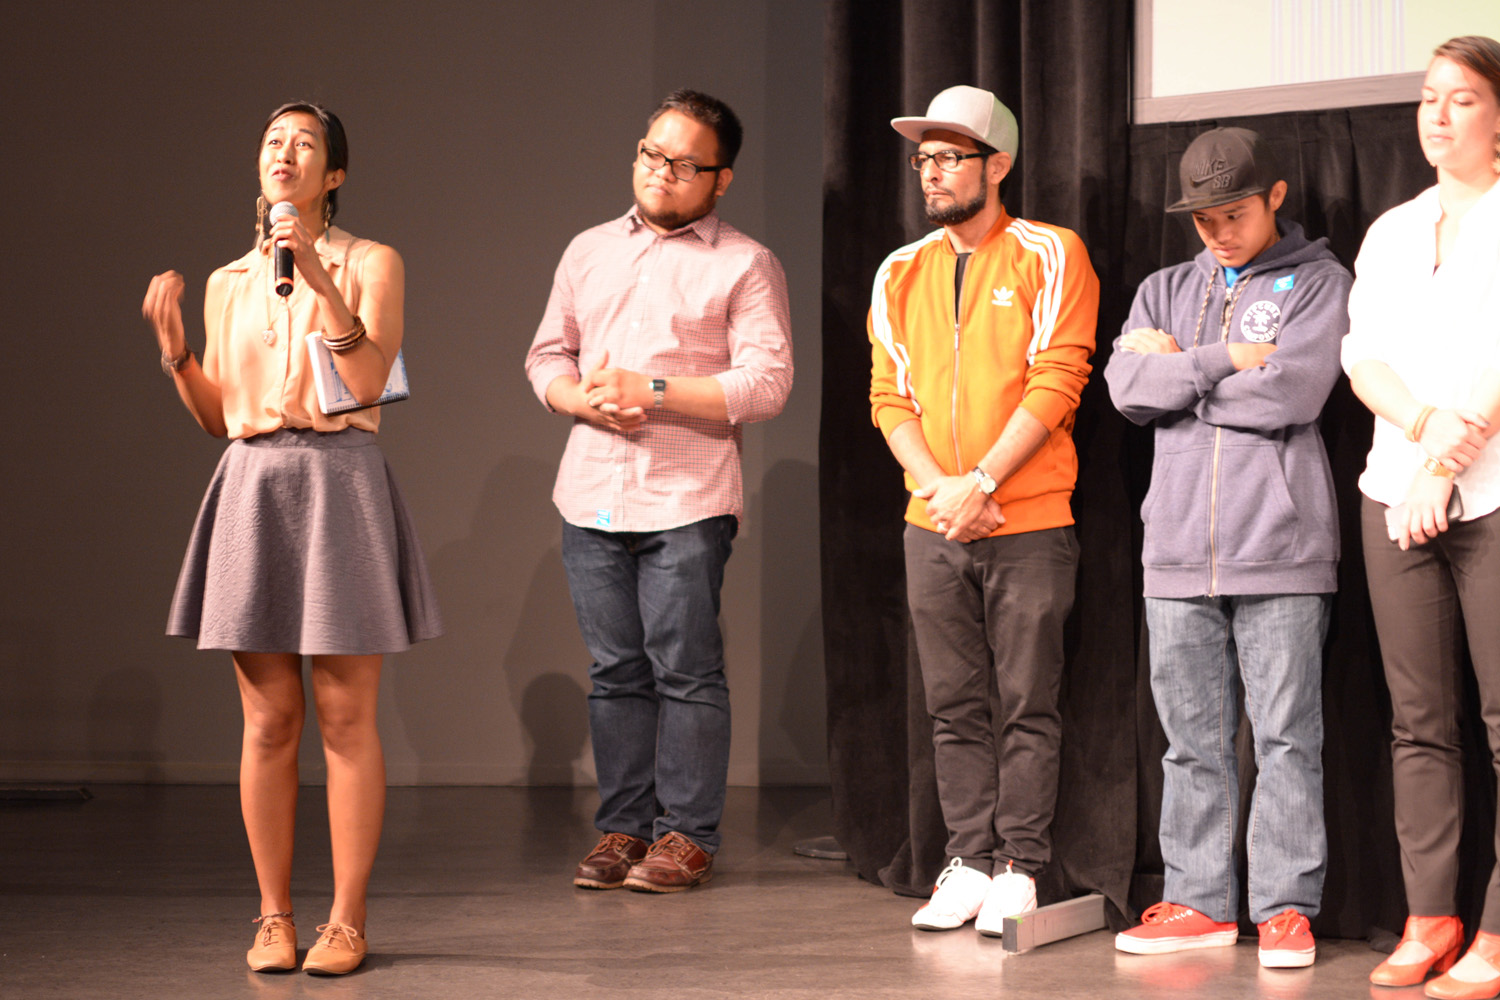 From 2015 - 2017, I served as the annual curator and host of  Los Angeles Asian Pacific Film Festival's Youth Media Program: From Vision to Reel , where I aim to select films that highlight underrepresented stories captured by Asian American and Pacific Islander youth and recruited community organizations to act as co-sponsors.